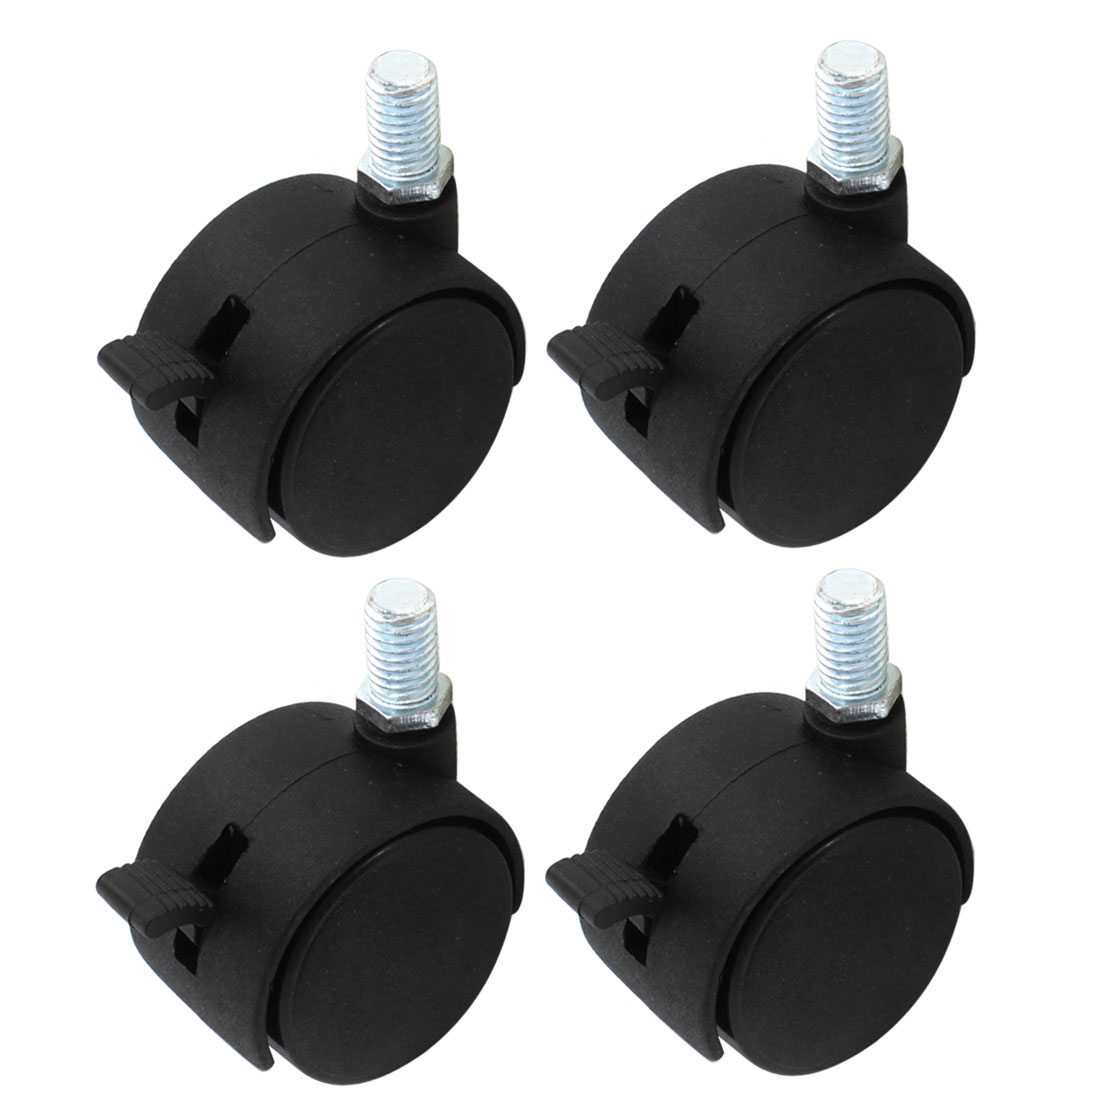 10mm Thread 40mm Twin Wheel Office Chair Rotary Swivel Brake Caster Black 4pcs